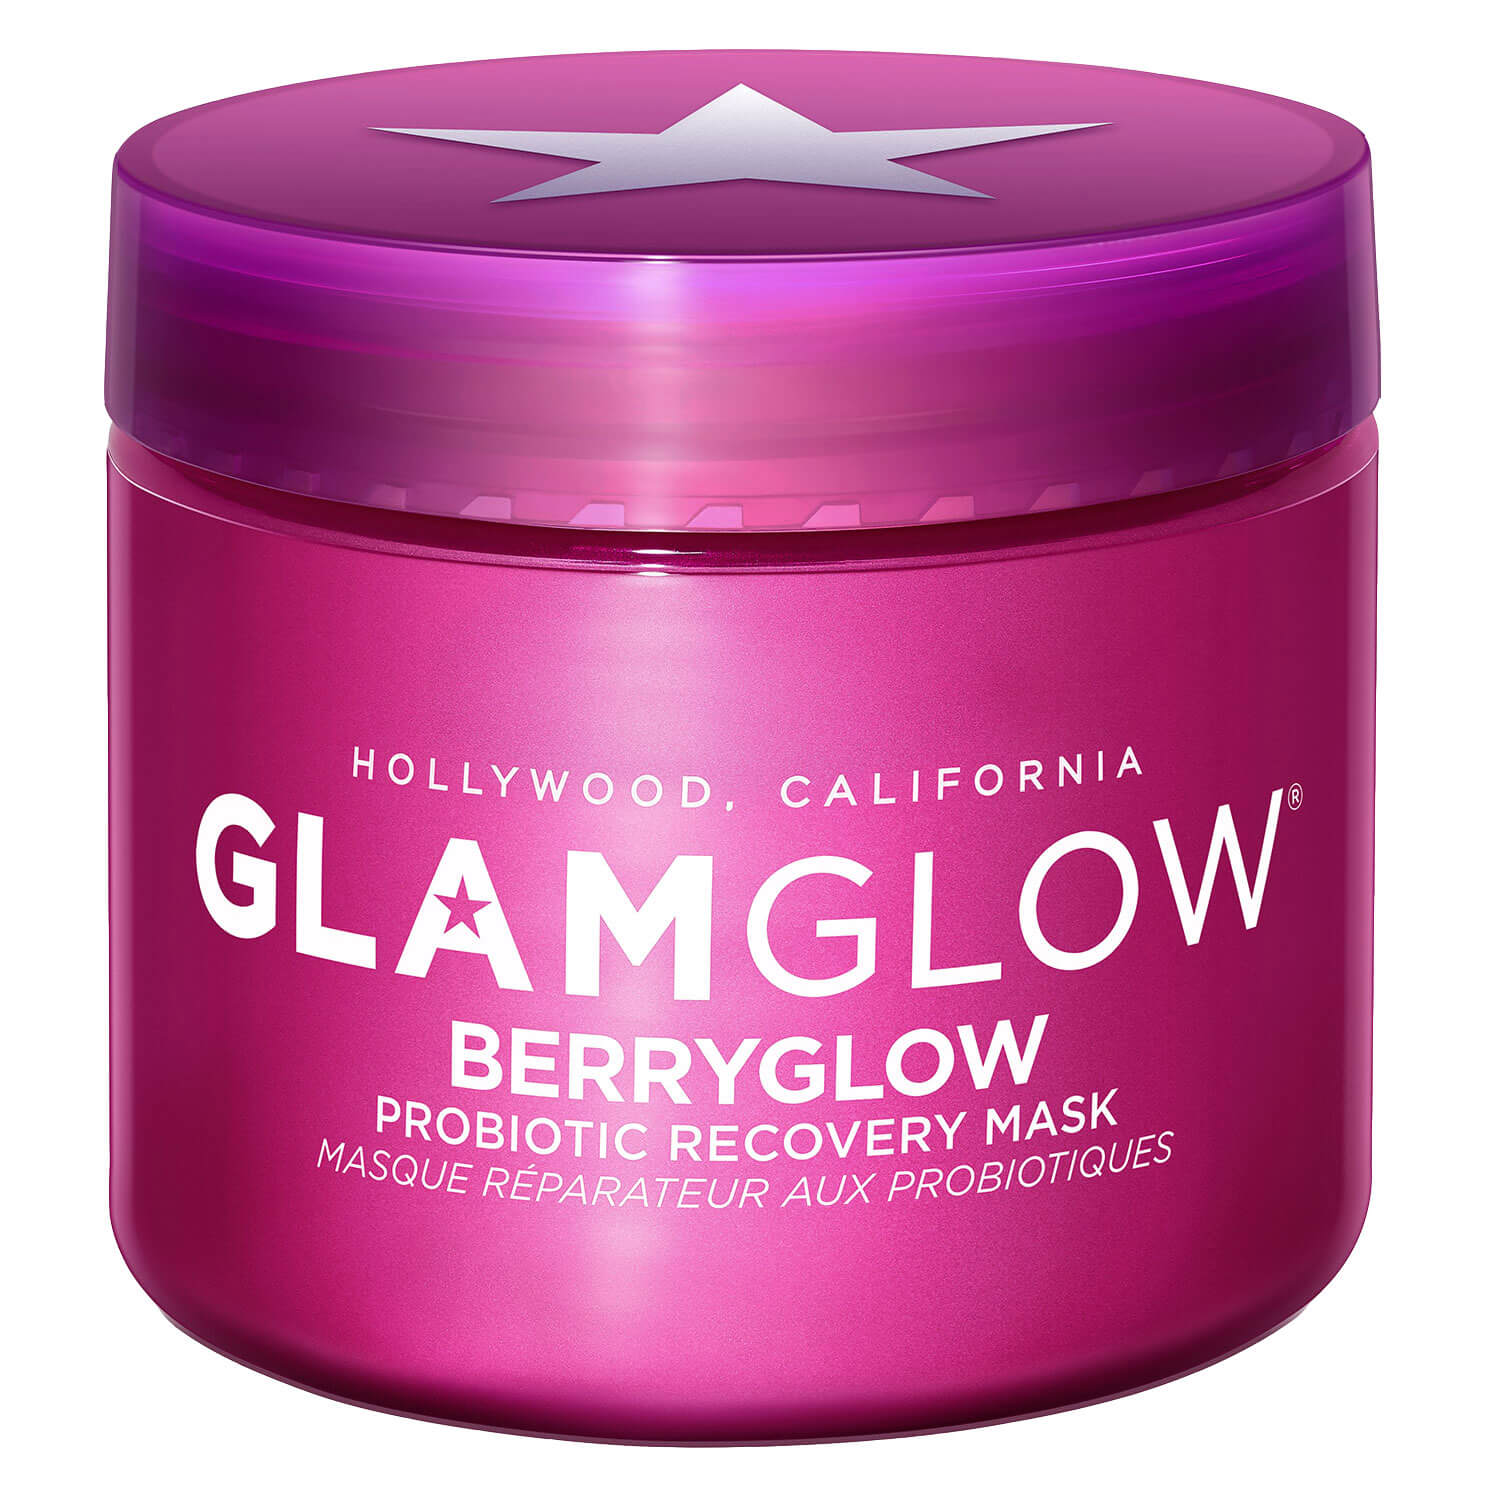 GlamGlow Mask - BERRYGLOW Probiotic Recovery Mask - 75ml